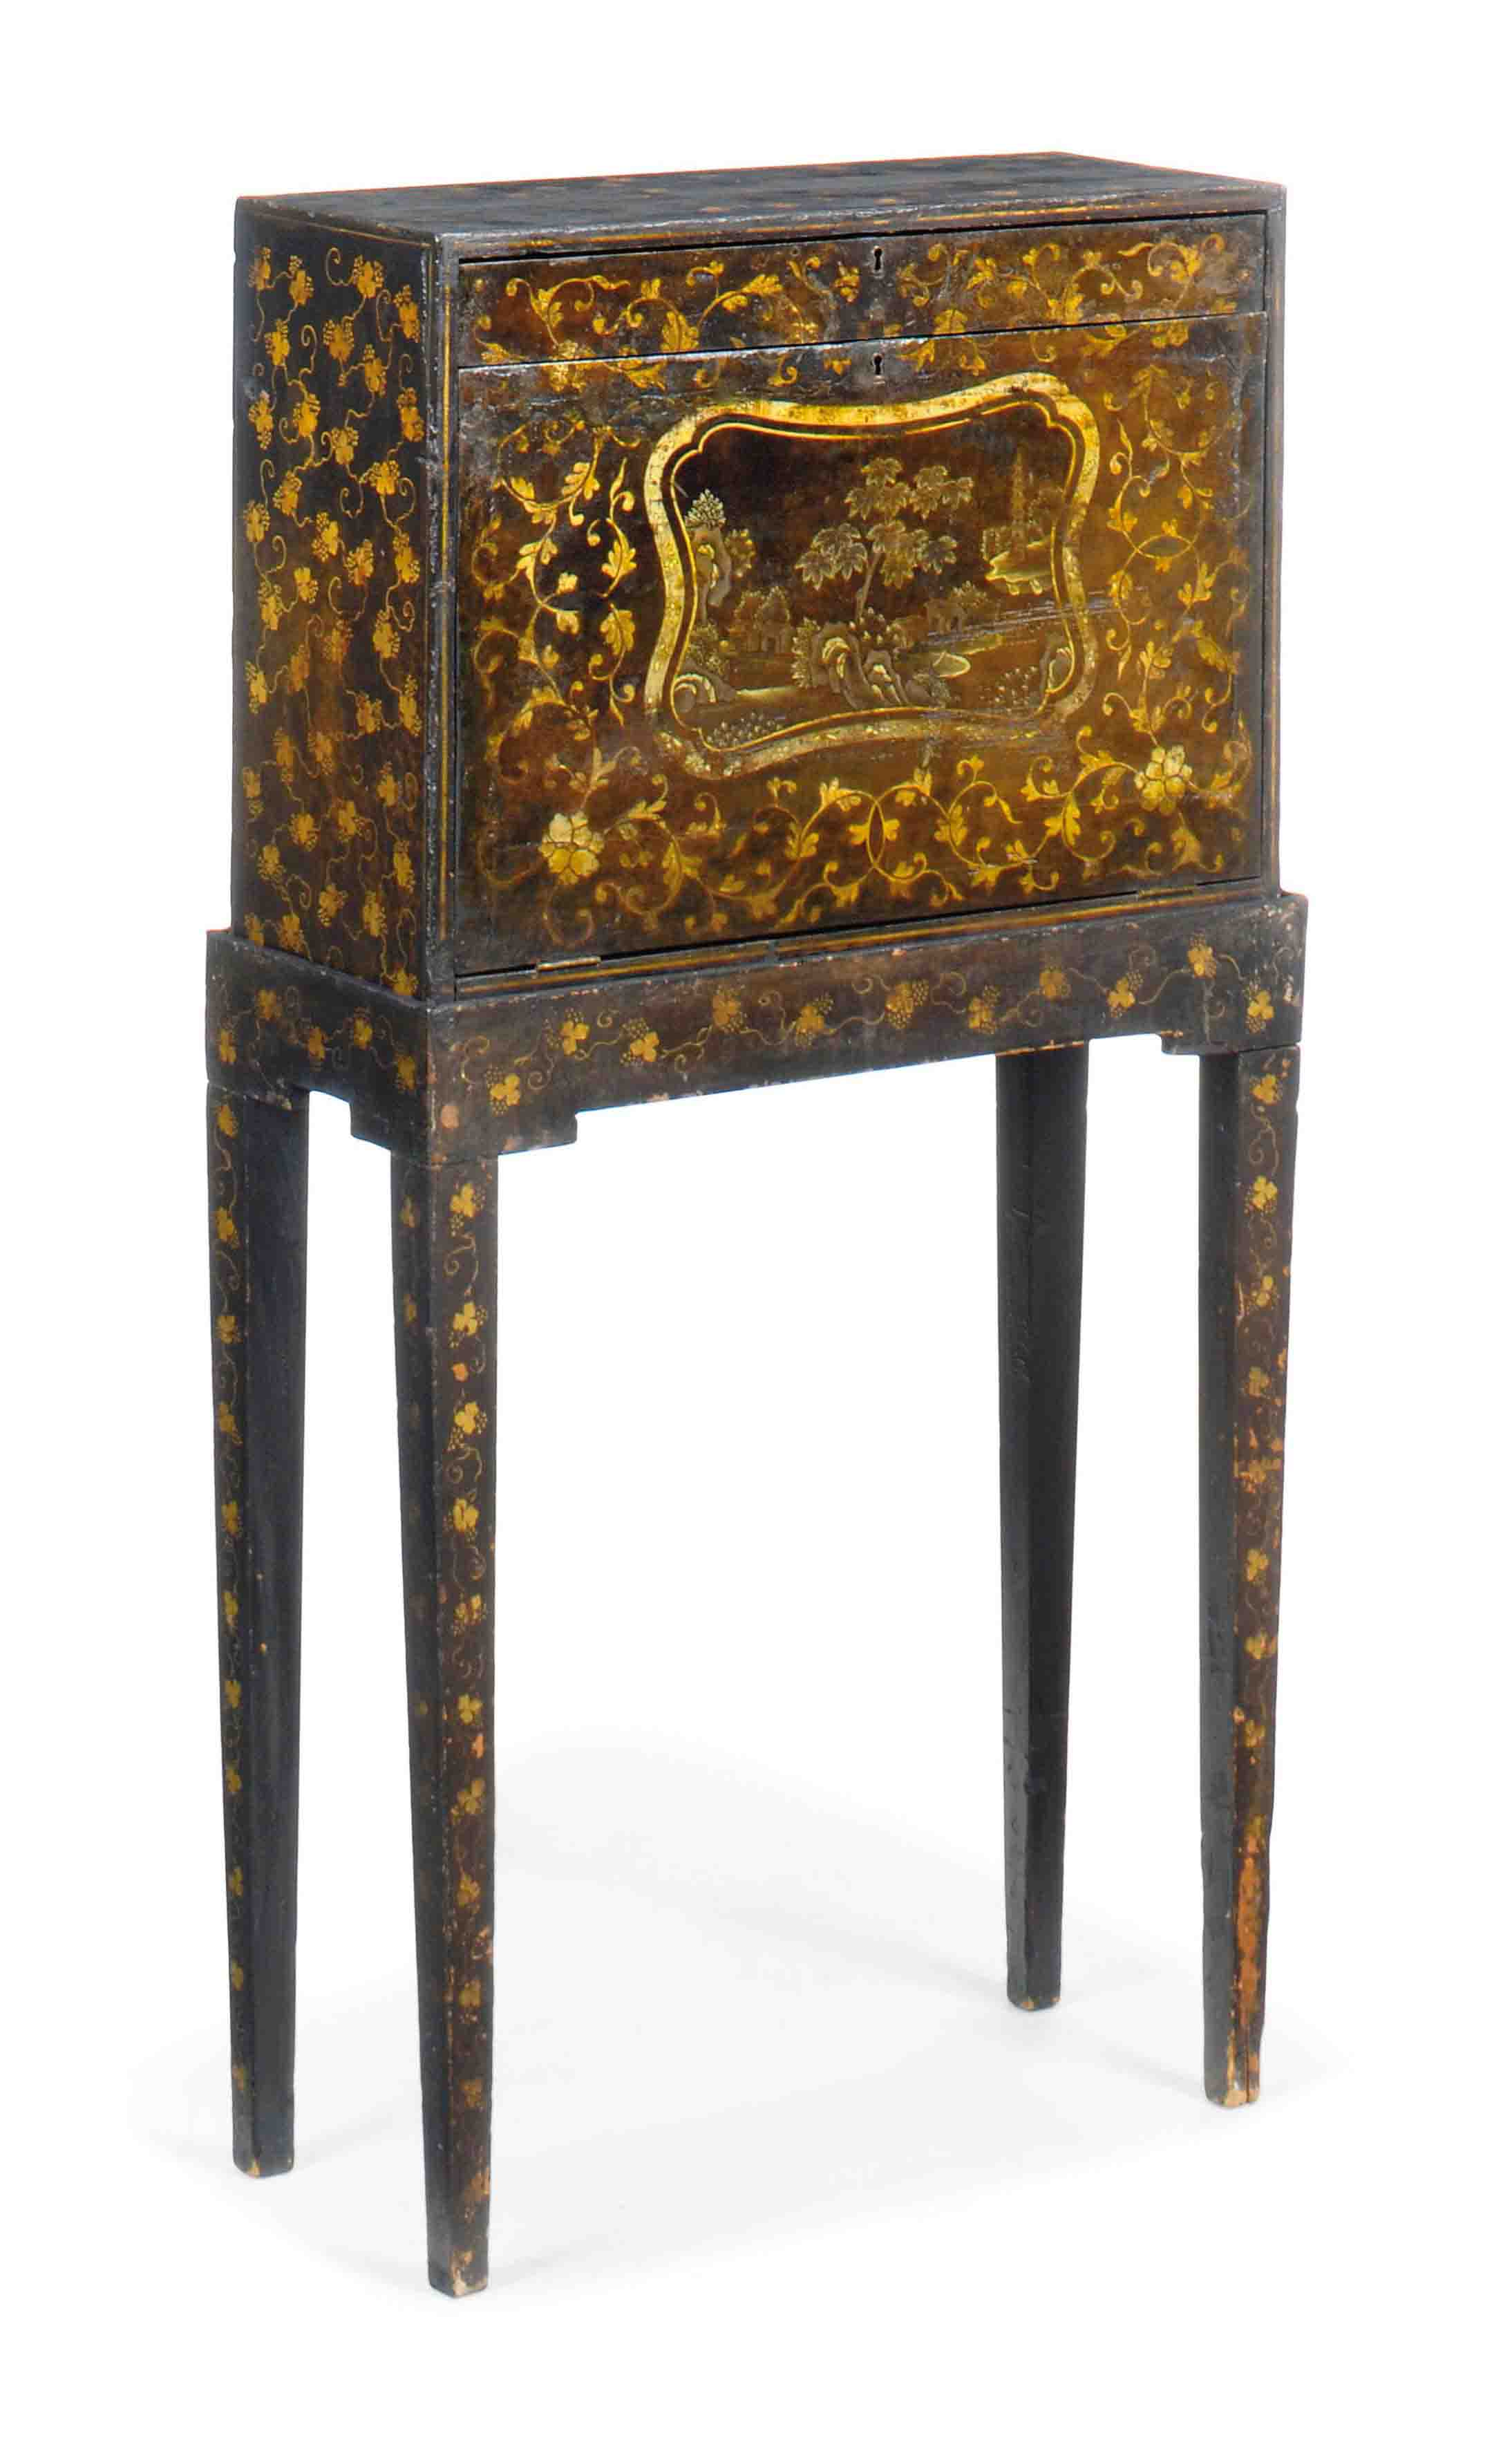 A REGENCY BLACK AND GILT JAPANNED CABINET ON STAND